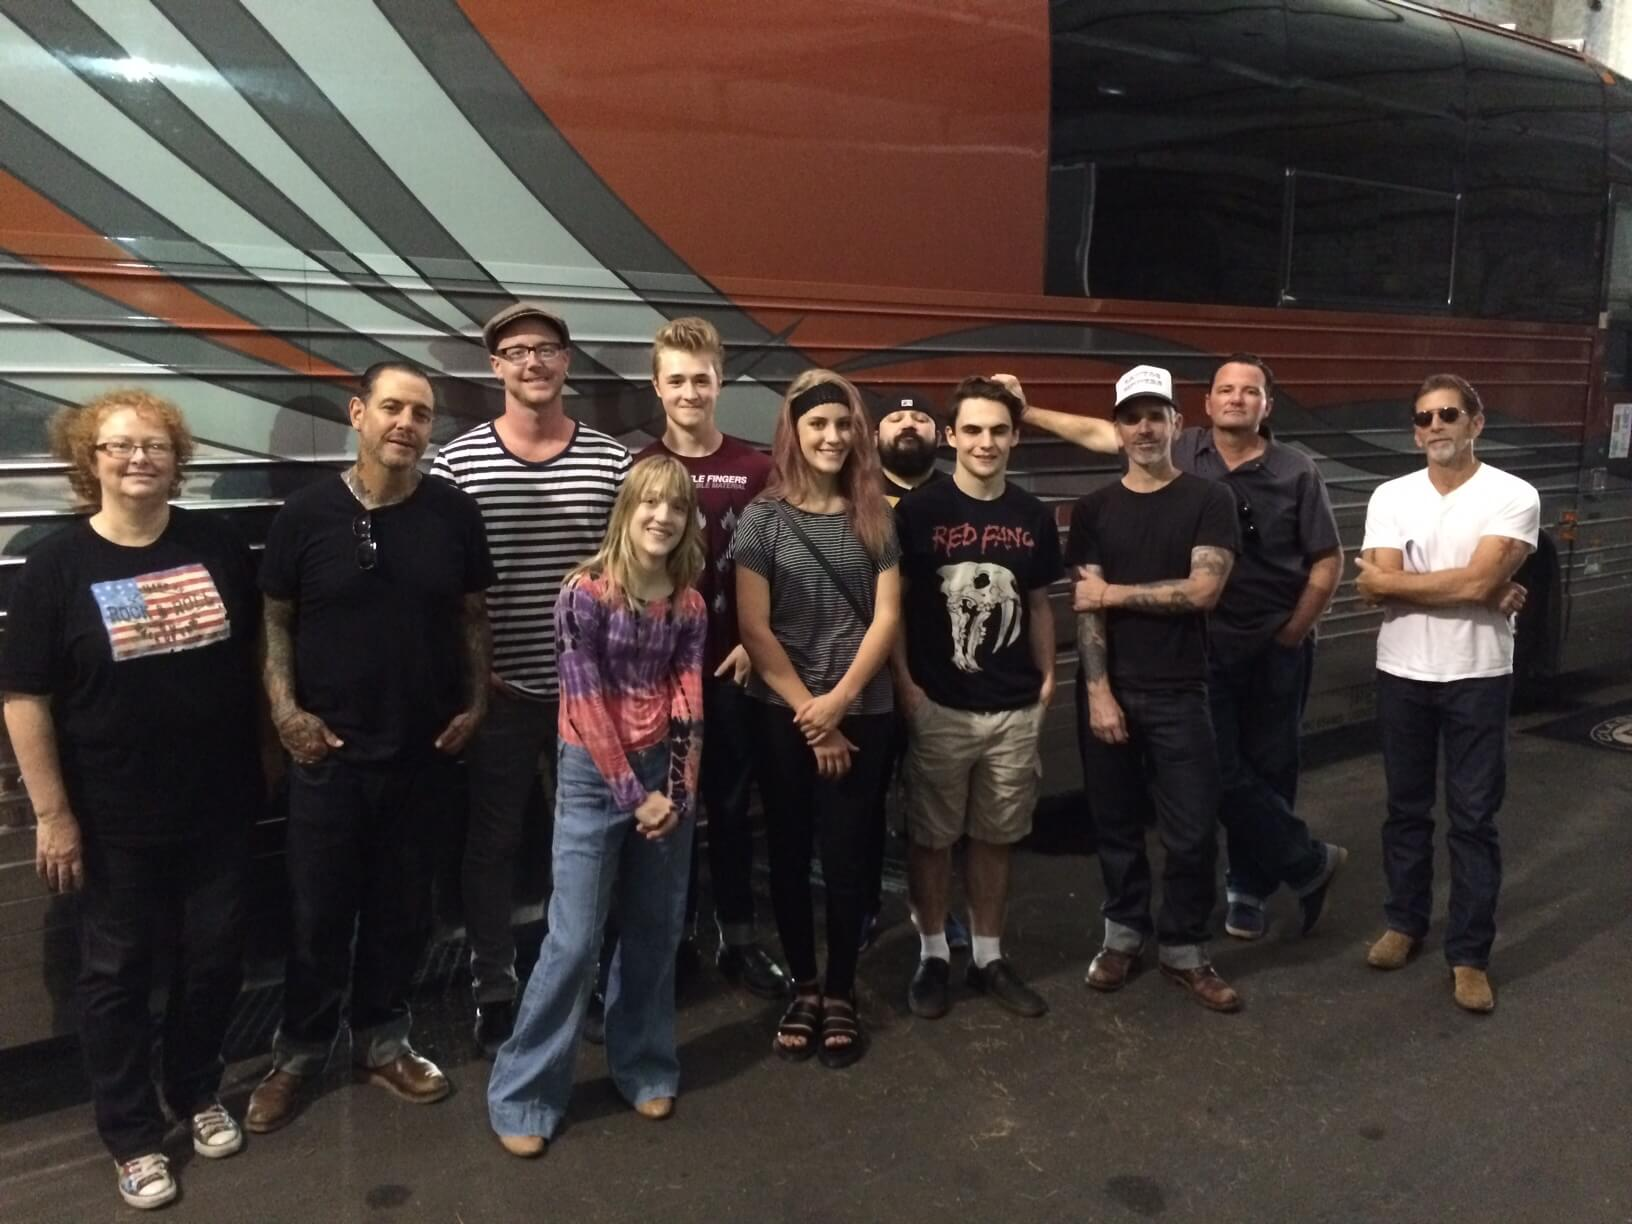 Social Distortion invited School of Rock students to their soundcheck while the band was performing at First Ave. in Minneapolis. Here we are, in the garage, with the band by their bus.